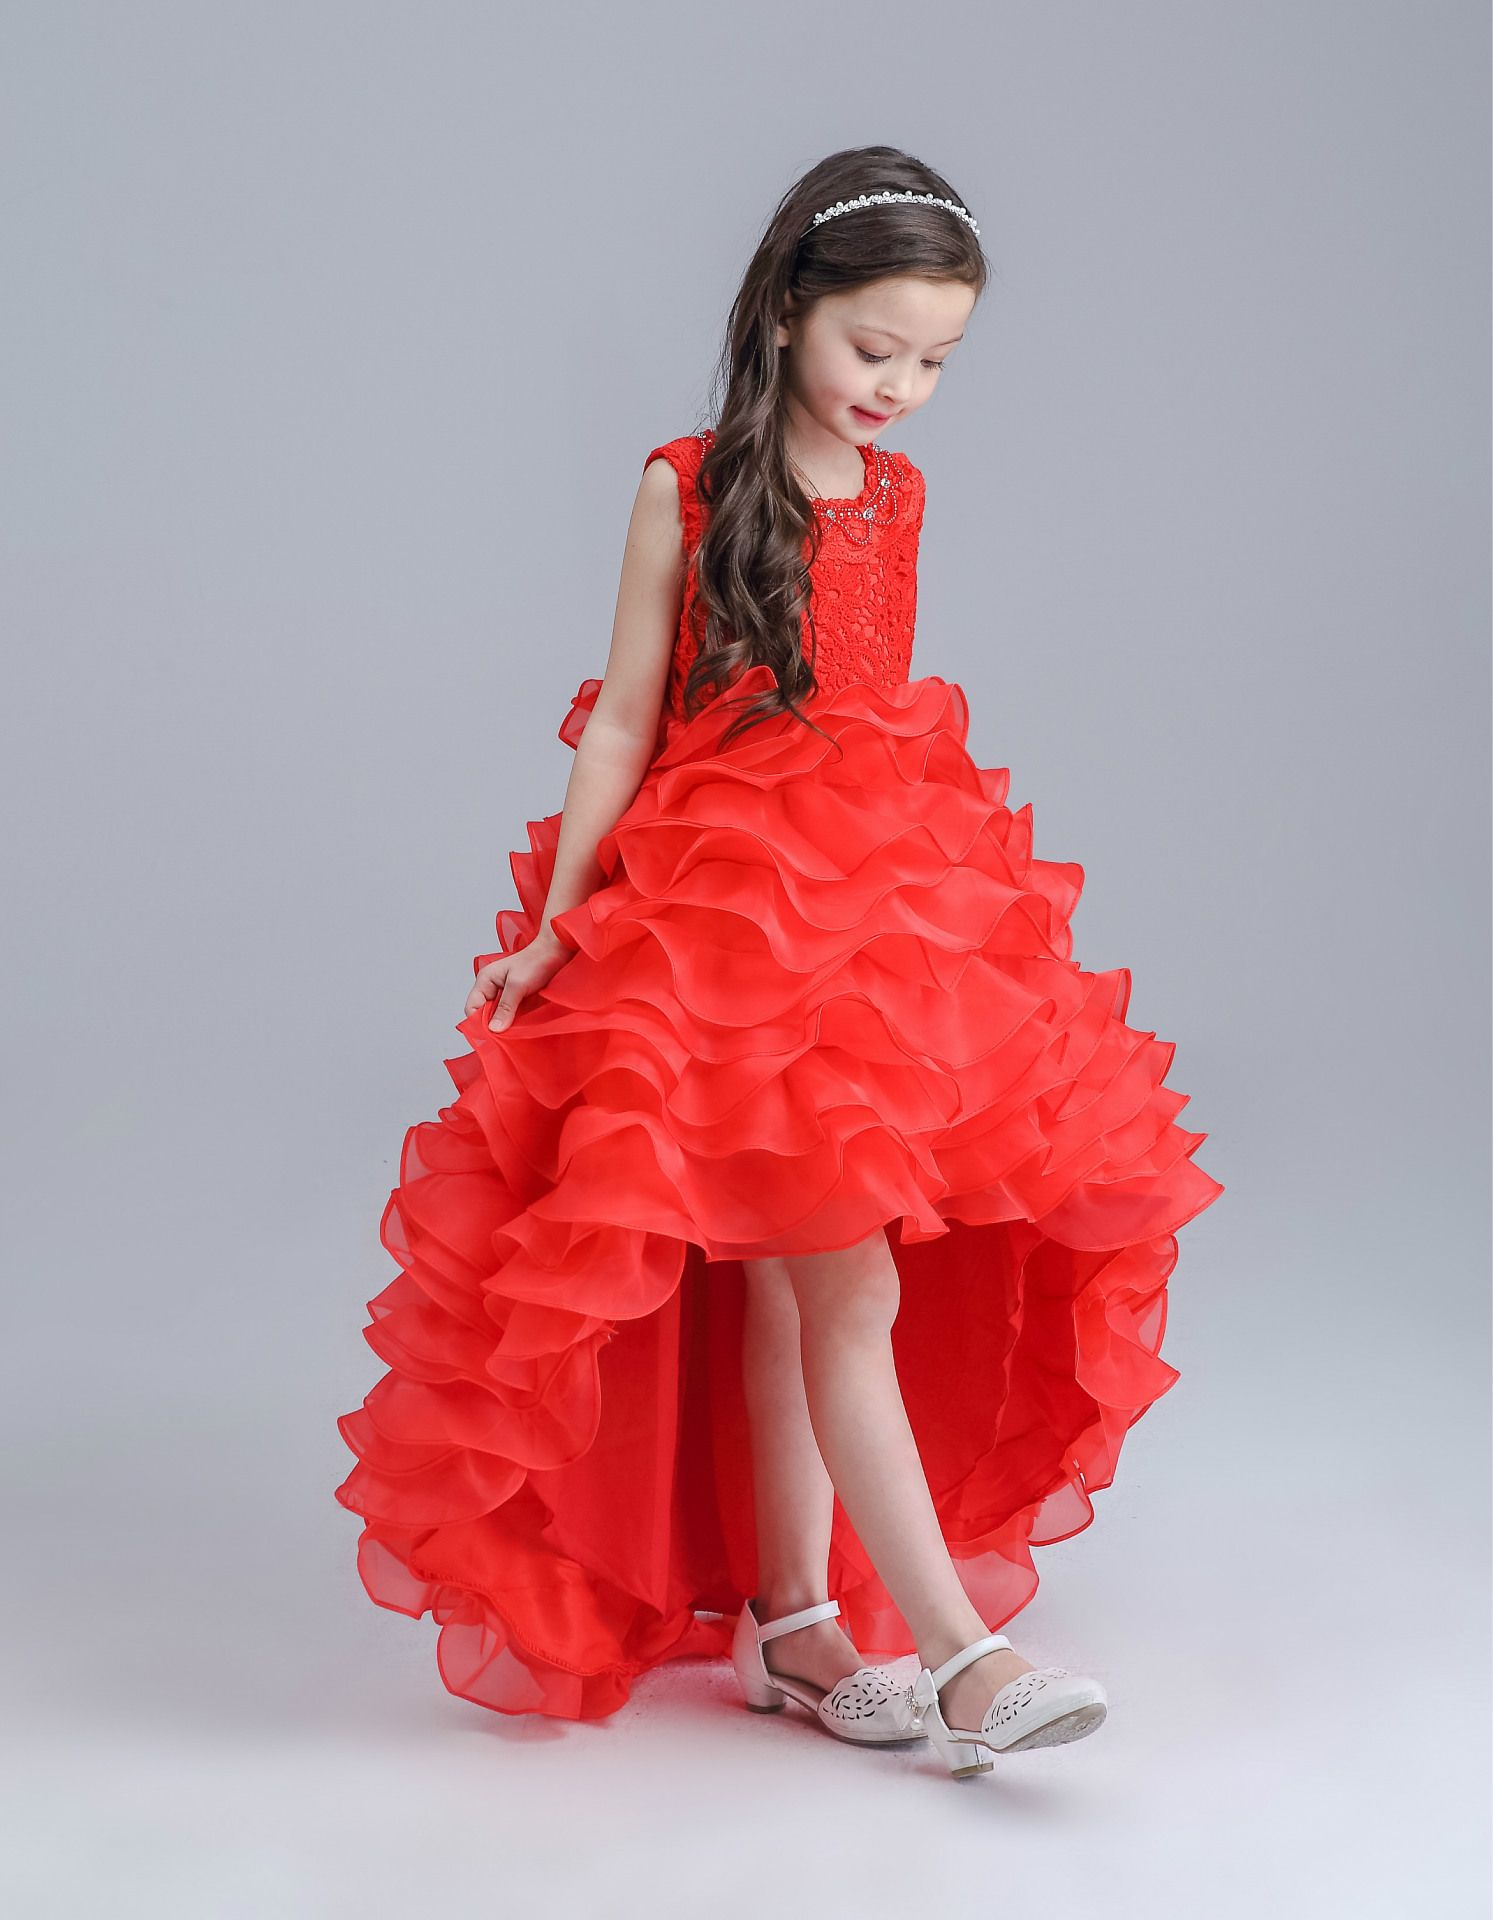 Red ittle bridesmaid dress pictures of wedding essentials new red tailed girls dress princess wedding party flower children bridesmaid vestidos ropa infantil girl 2016 kids clothes ombrellifo Gallery